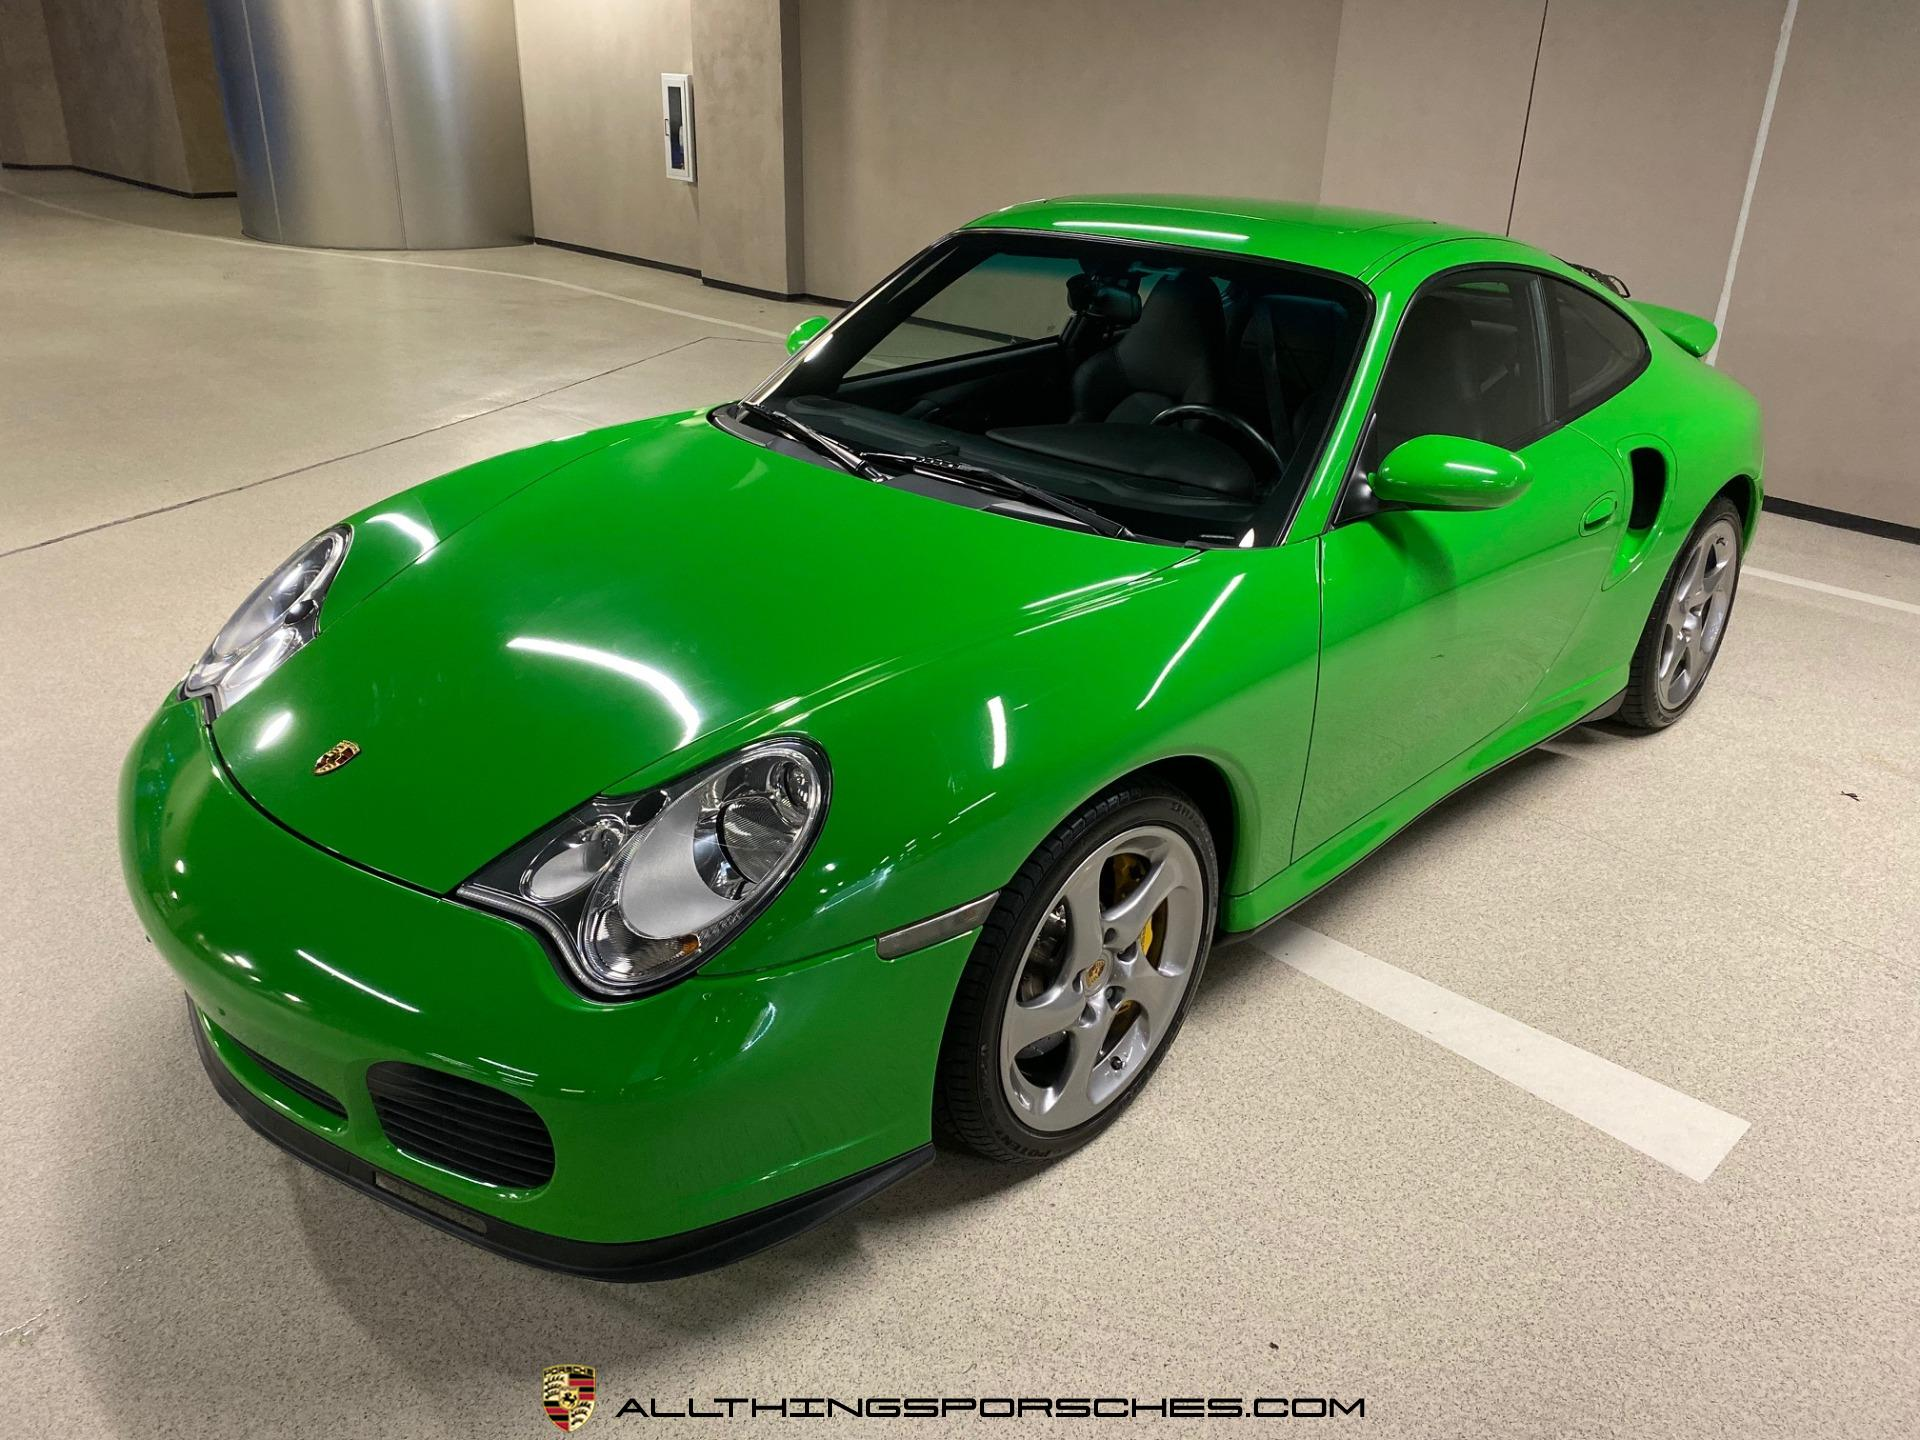 Used-2005-Porsche-911-Turbo-S